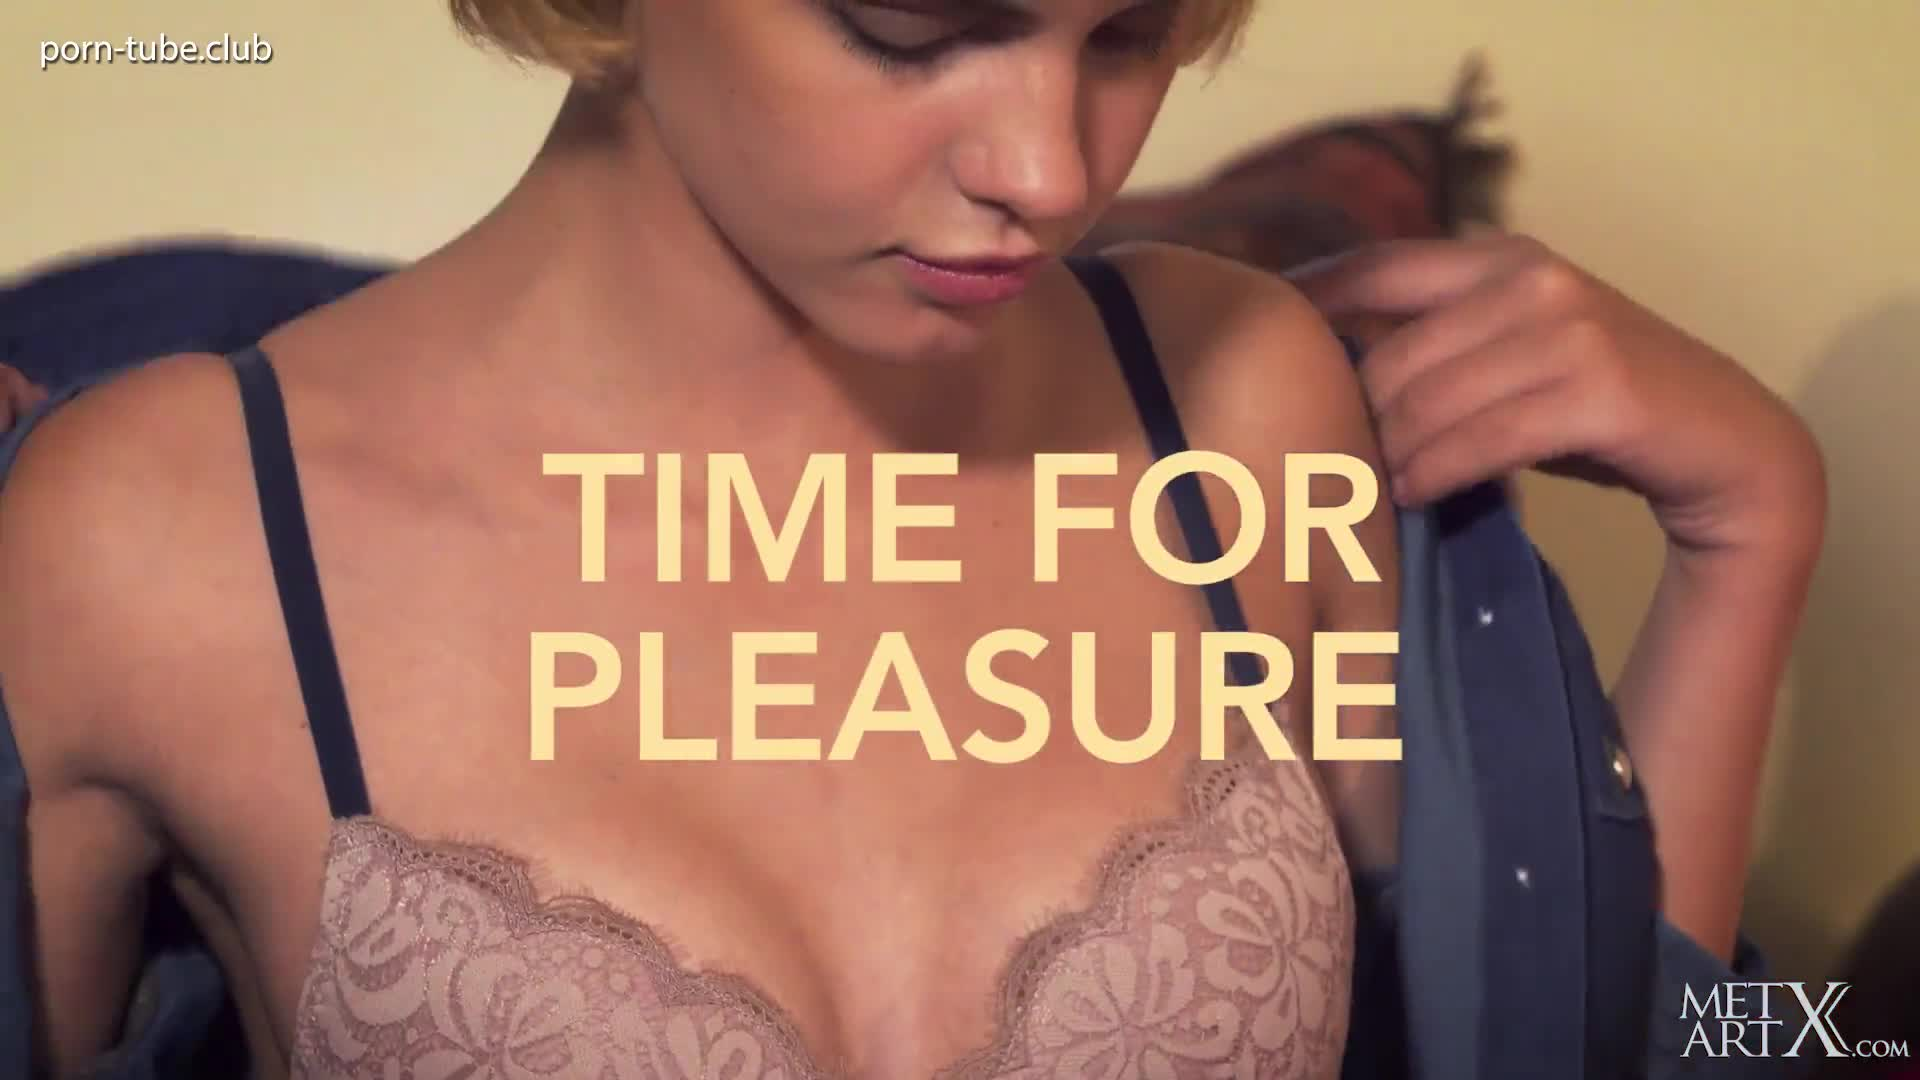 MetArtX 18.01.18 Lilit A aka Ariel A Time For Pleasure 2